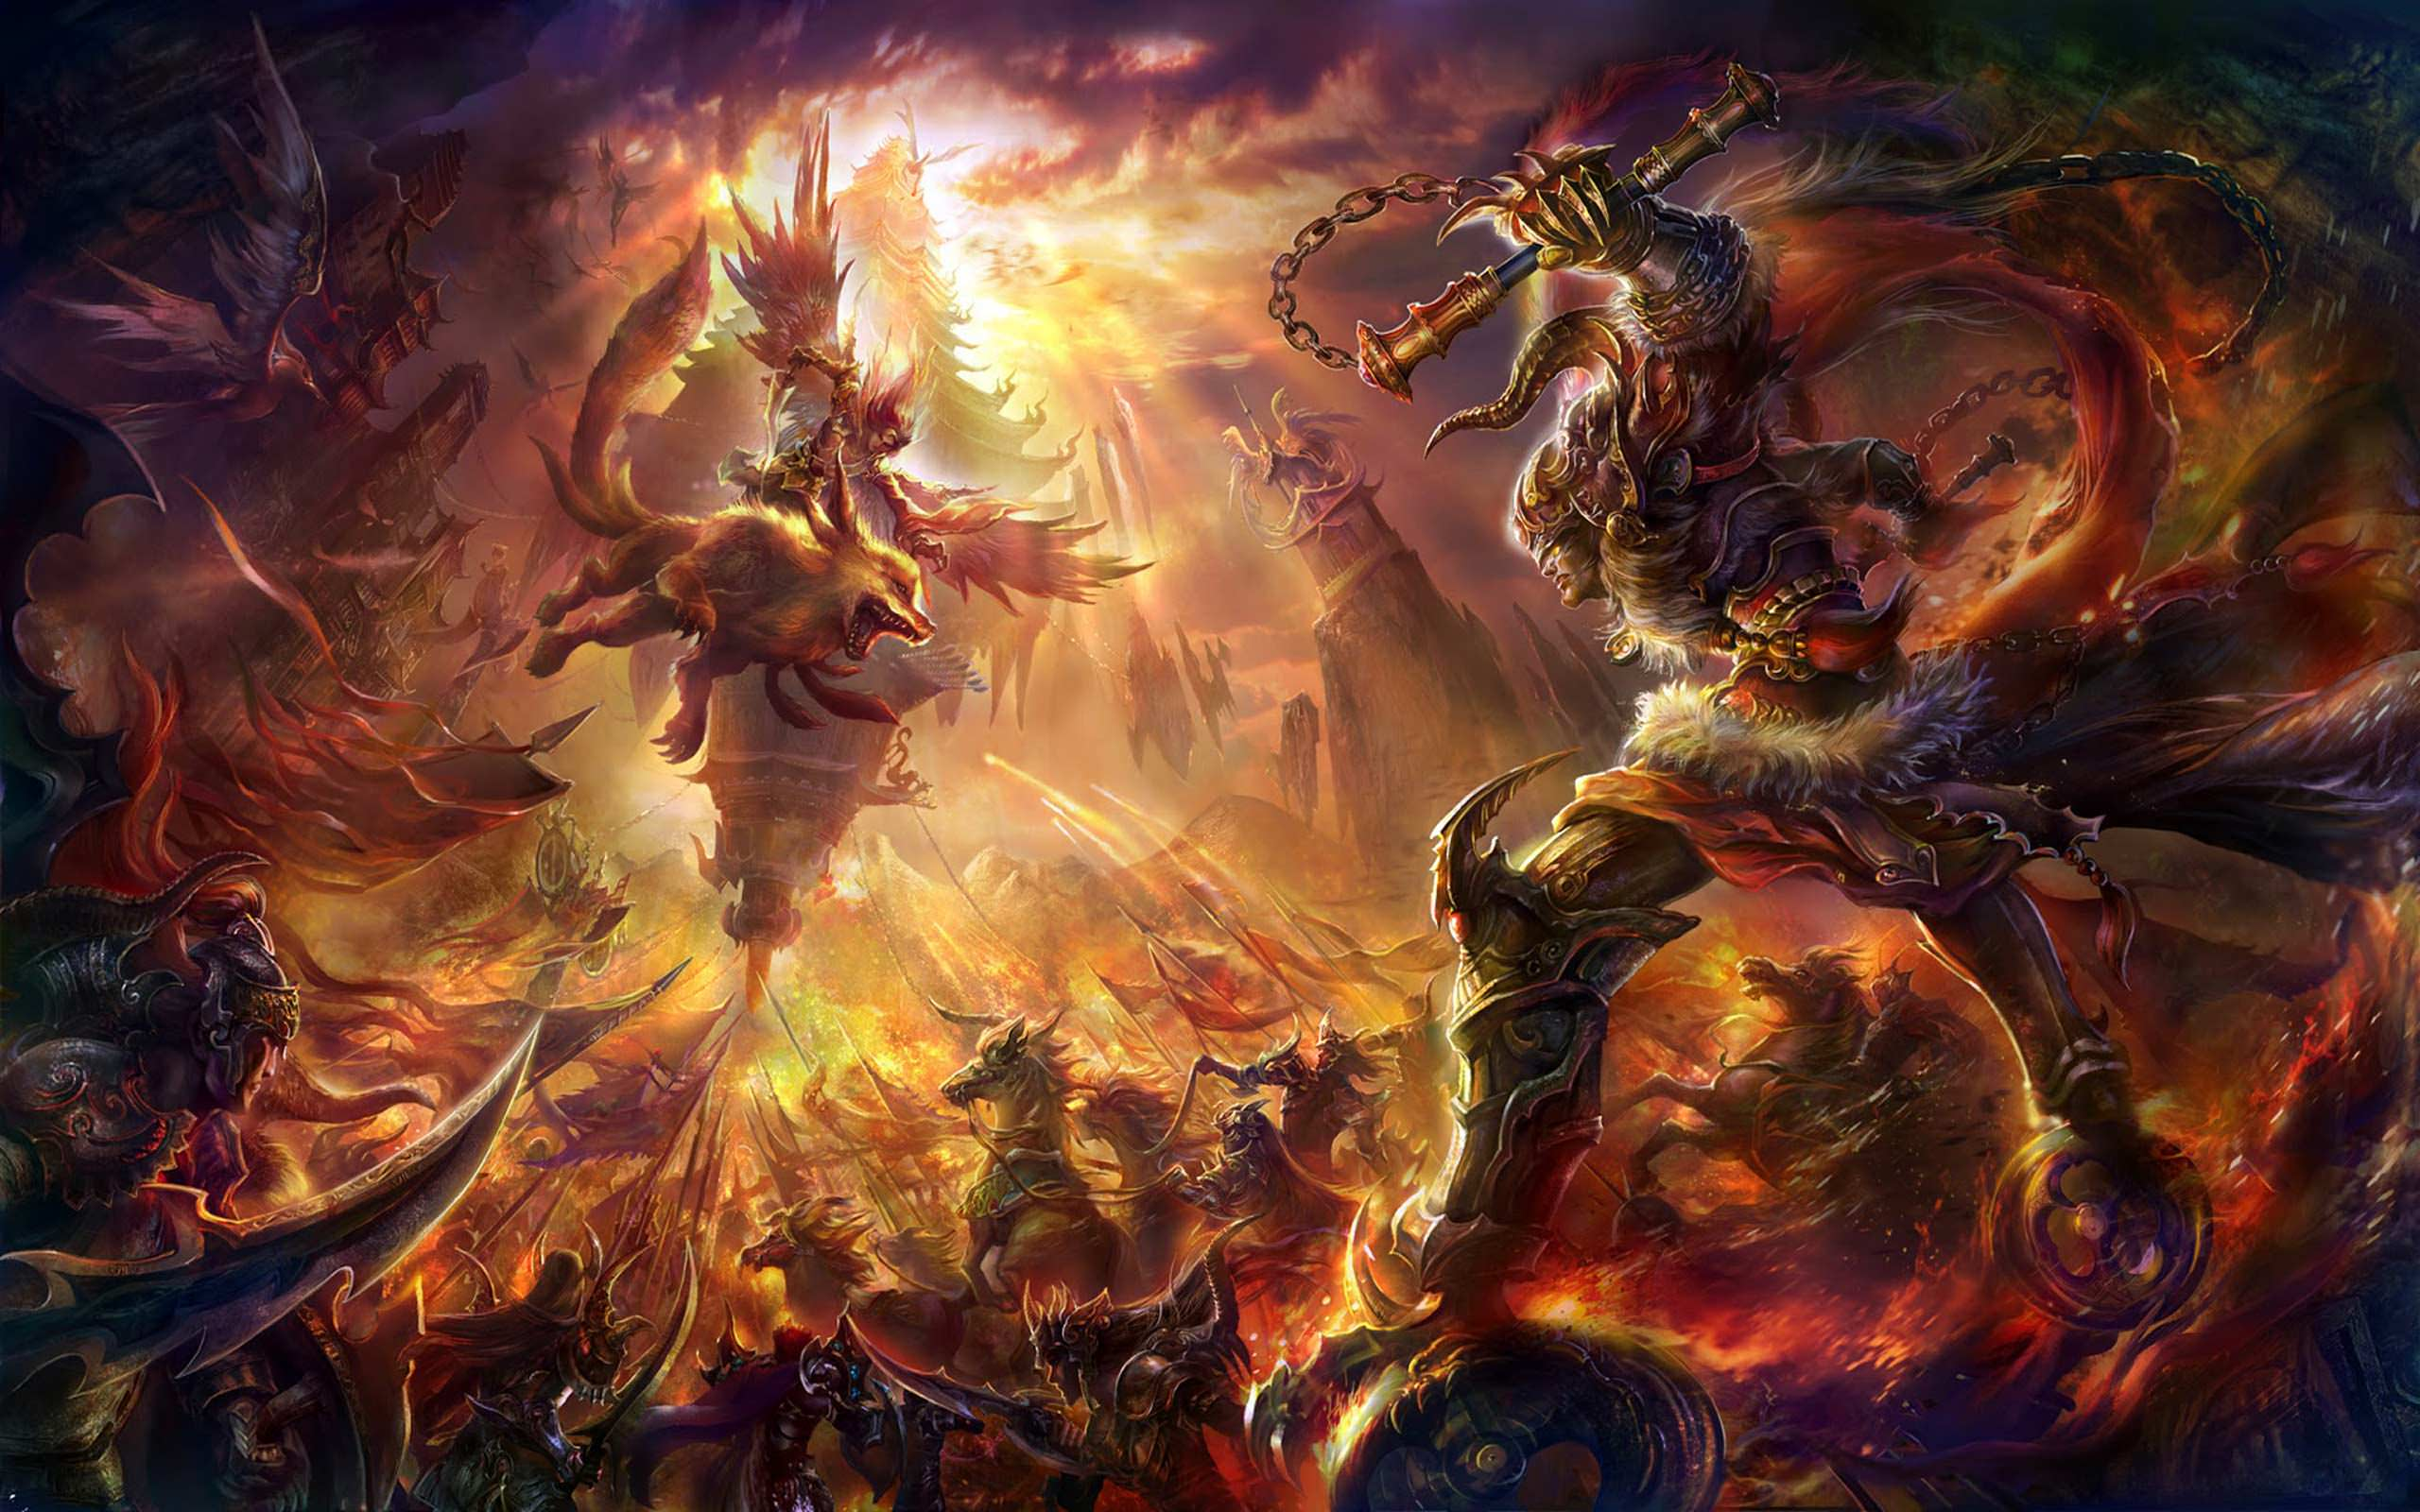 Epic Battle Wallpapers Top Free Epic Battle Backgrounds Wallpaperaccess